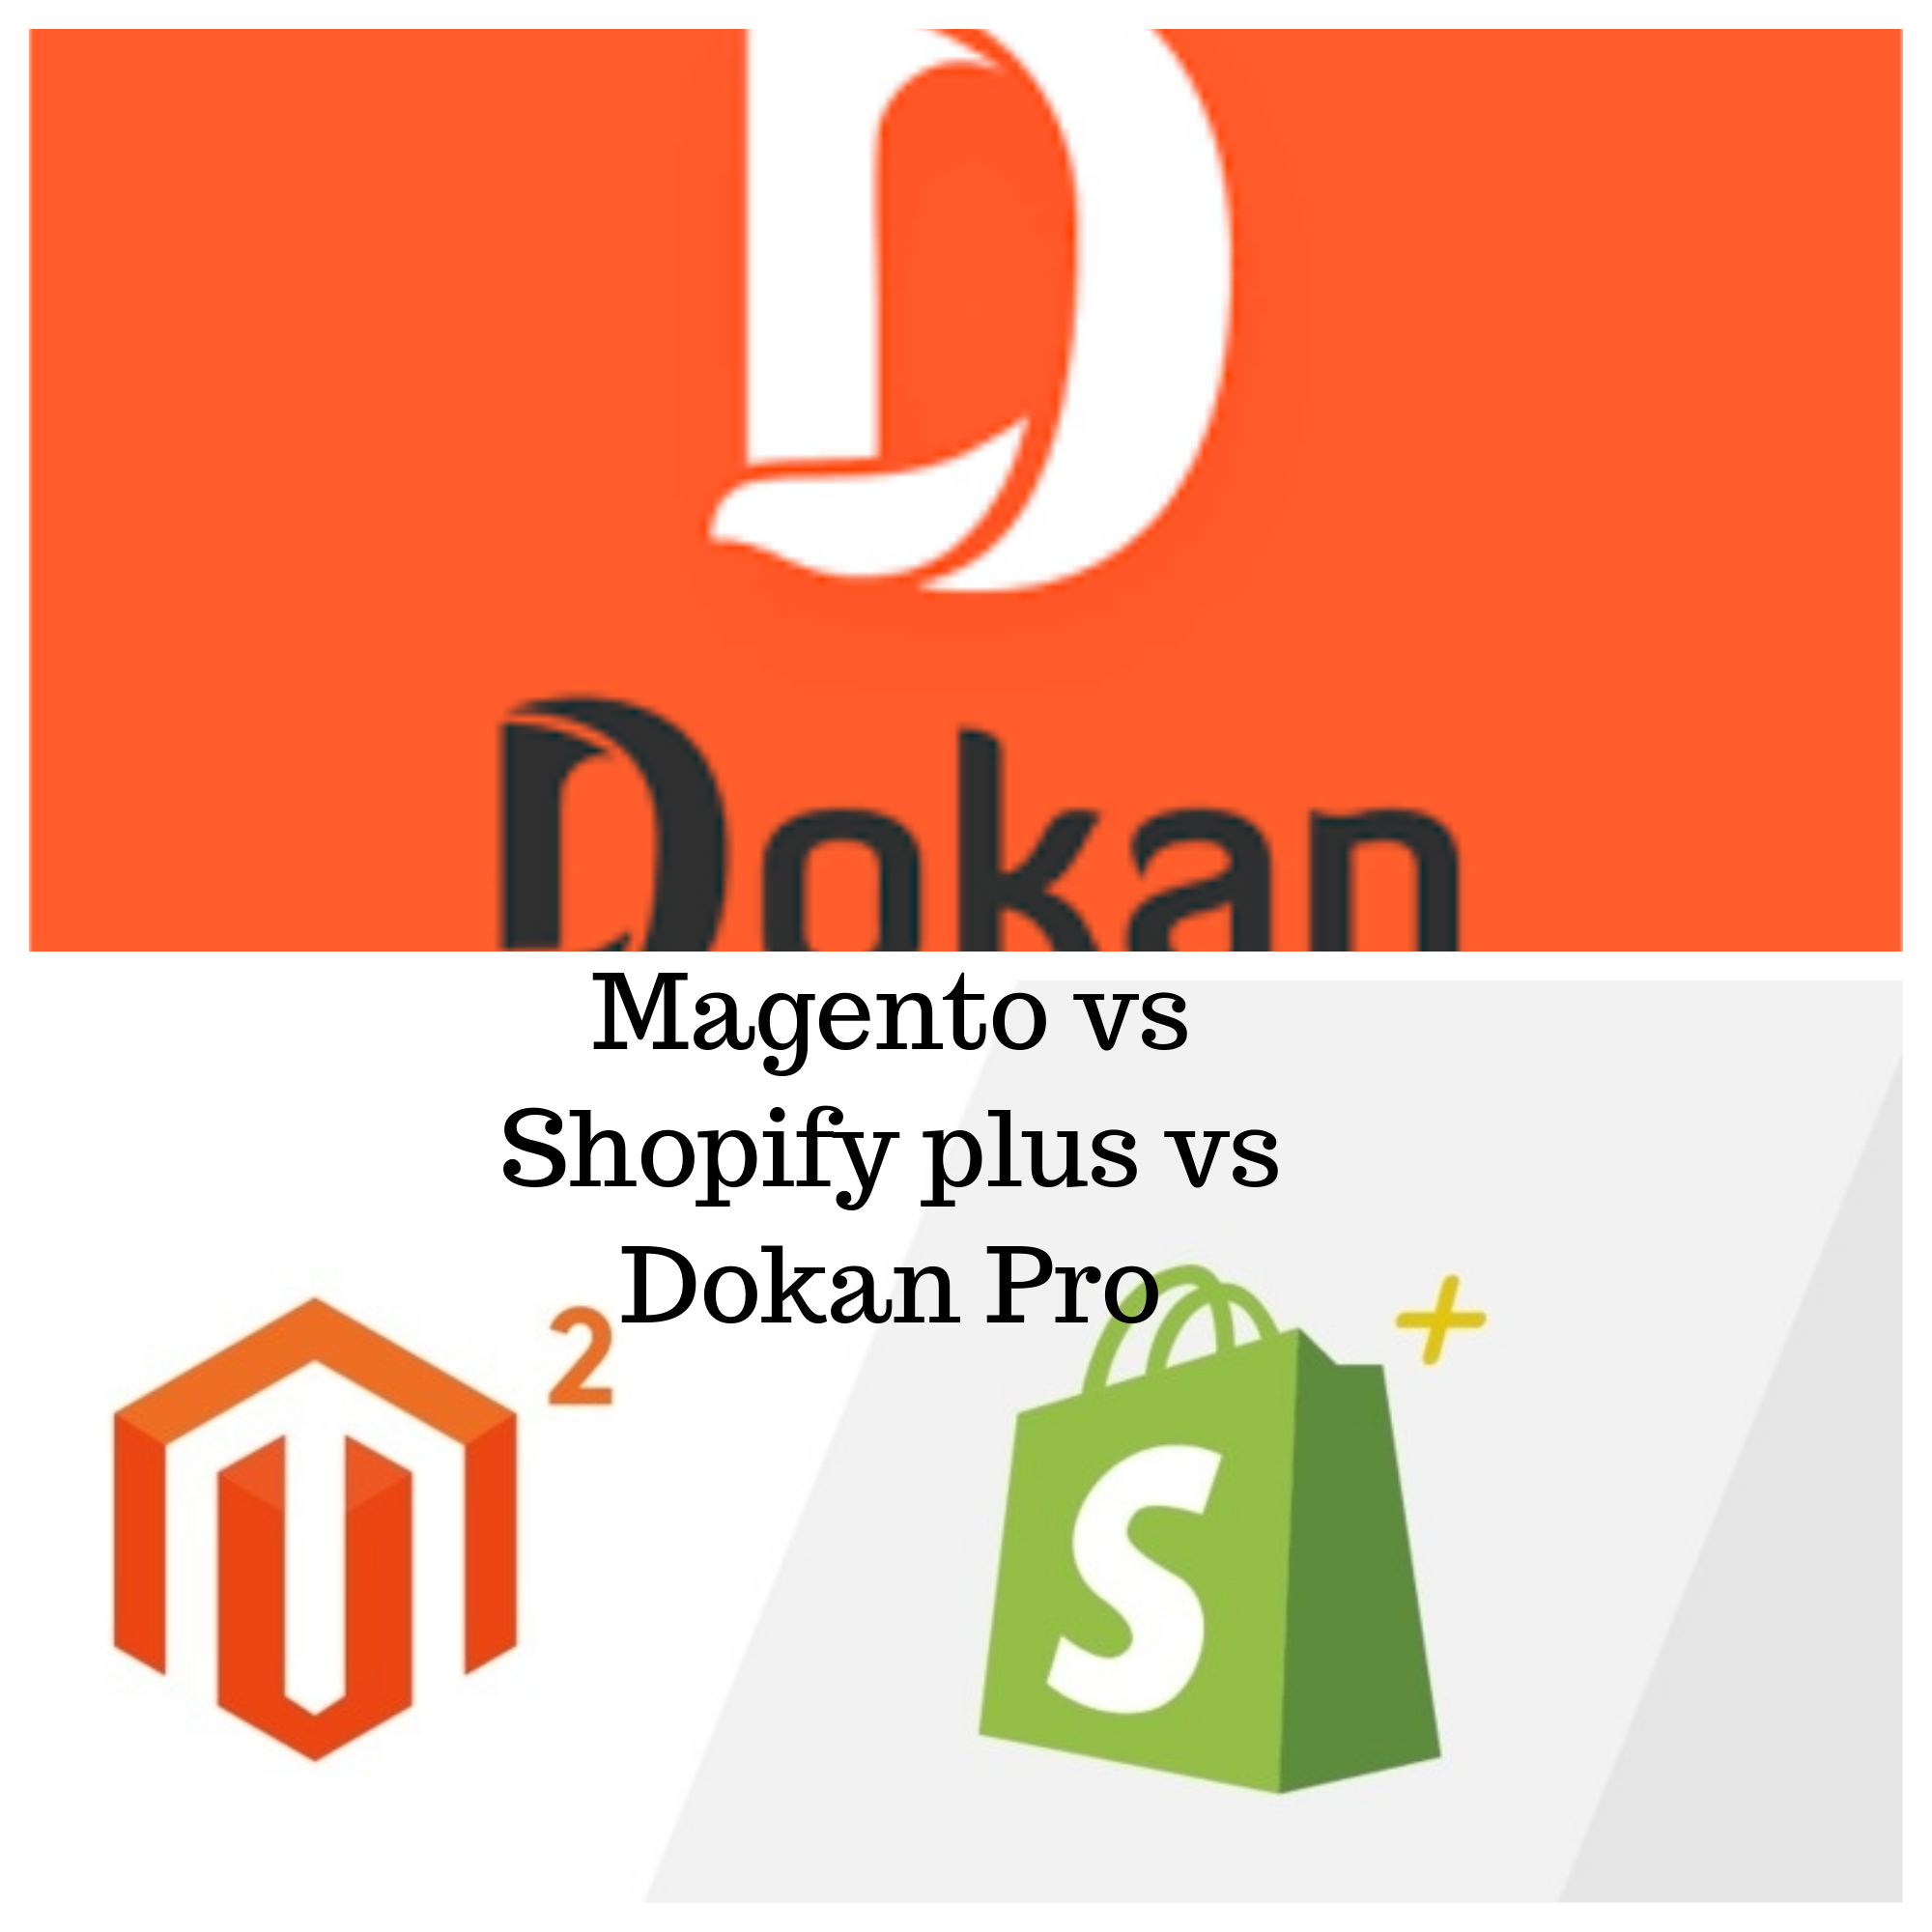 Magento vs Shopify Plus vs Dokan Pro: The Enterprise eCommerce Standoff